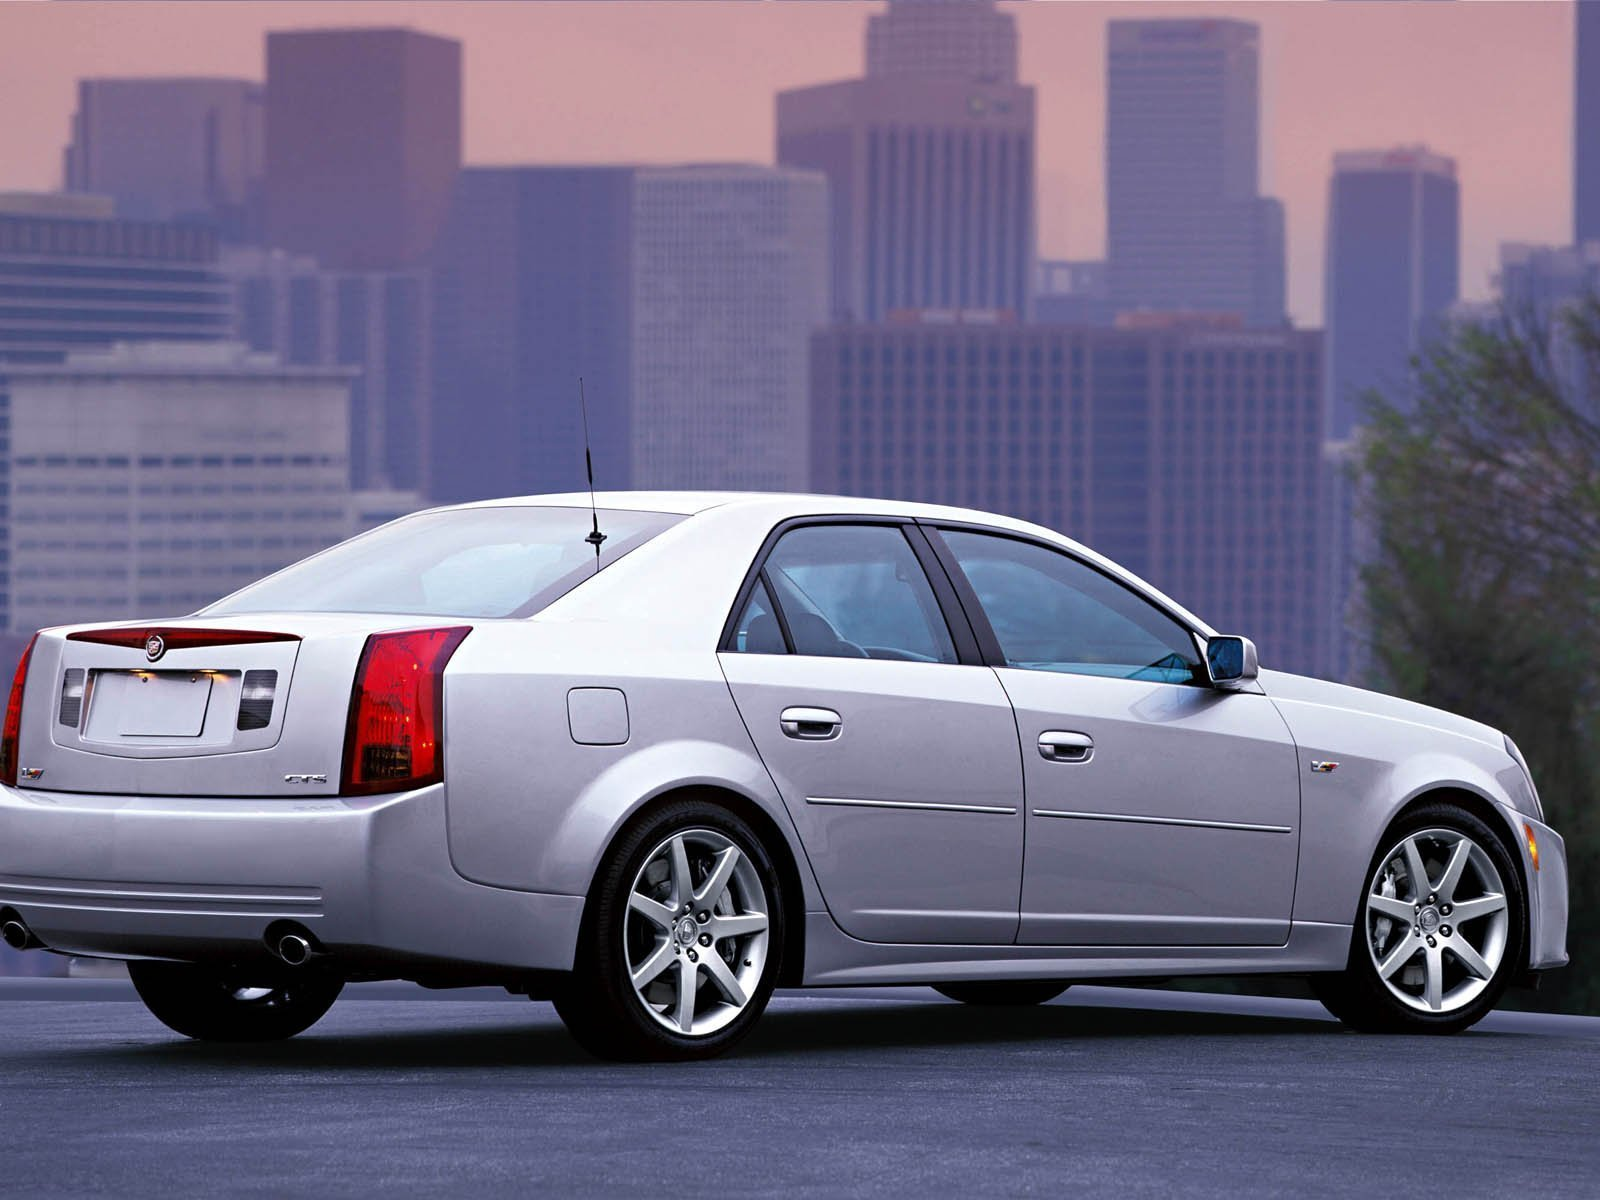 2006 cadillac cts v picture 31370 car review top speed. Black Bedroom Furniture Sets. Home Design Ideas